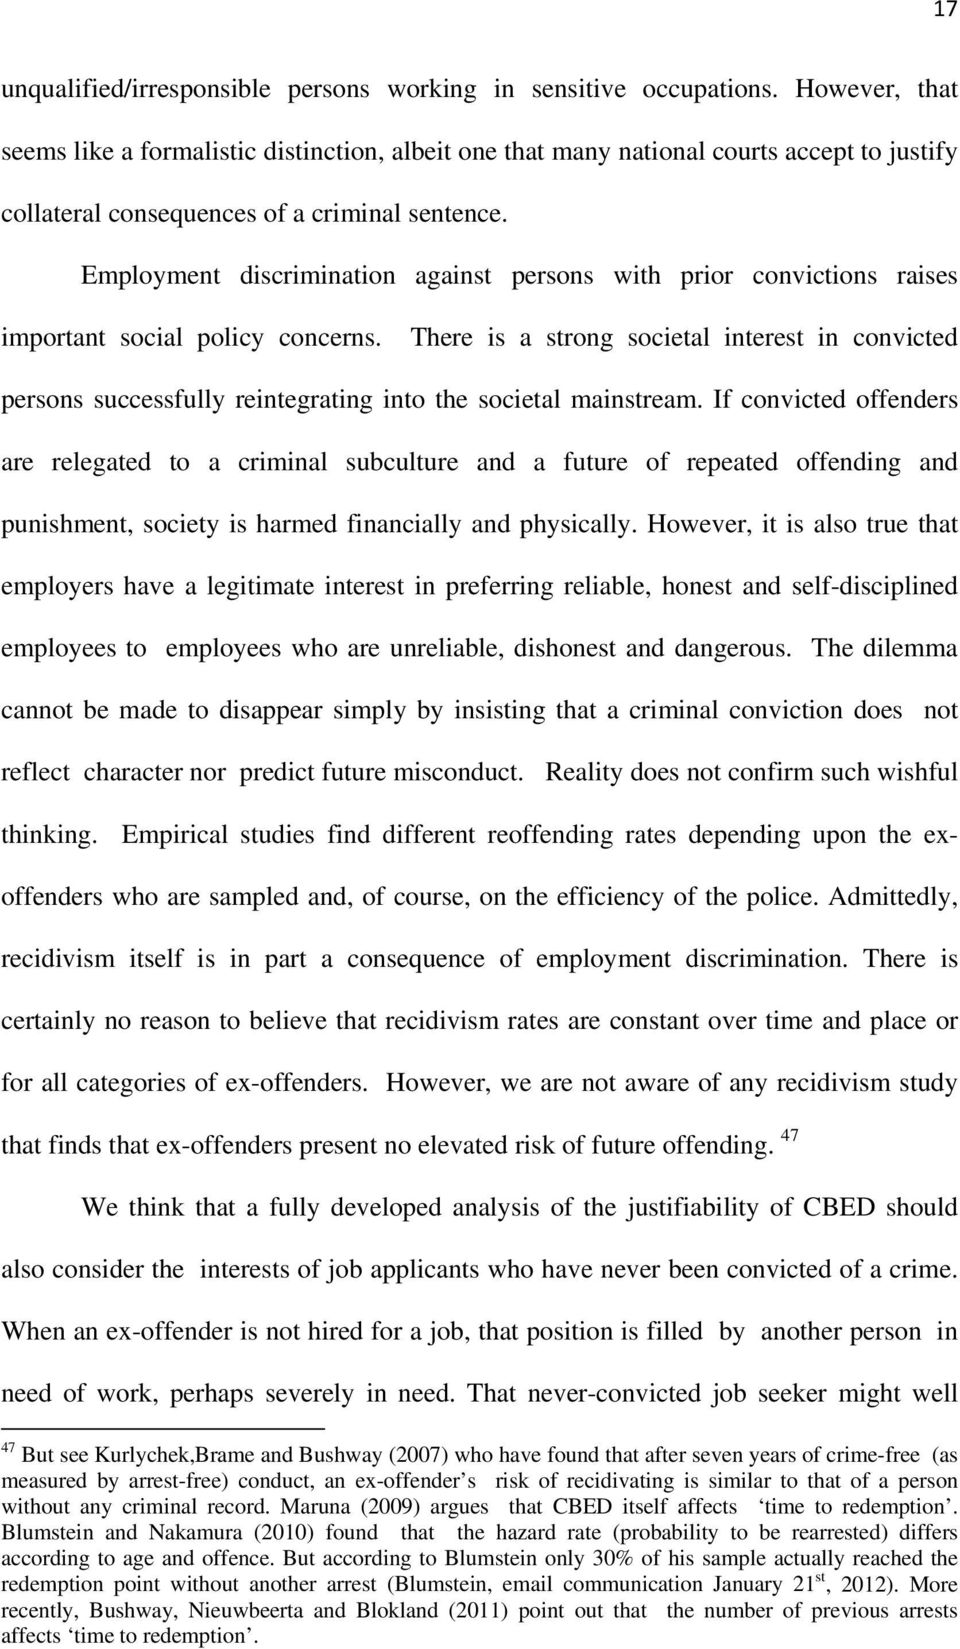 Employment discrimination against persons with prior convictions raises important social policy concerns.